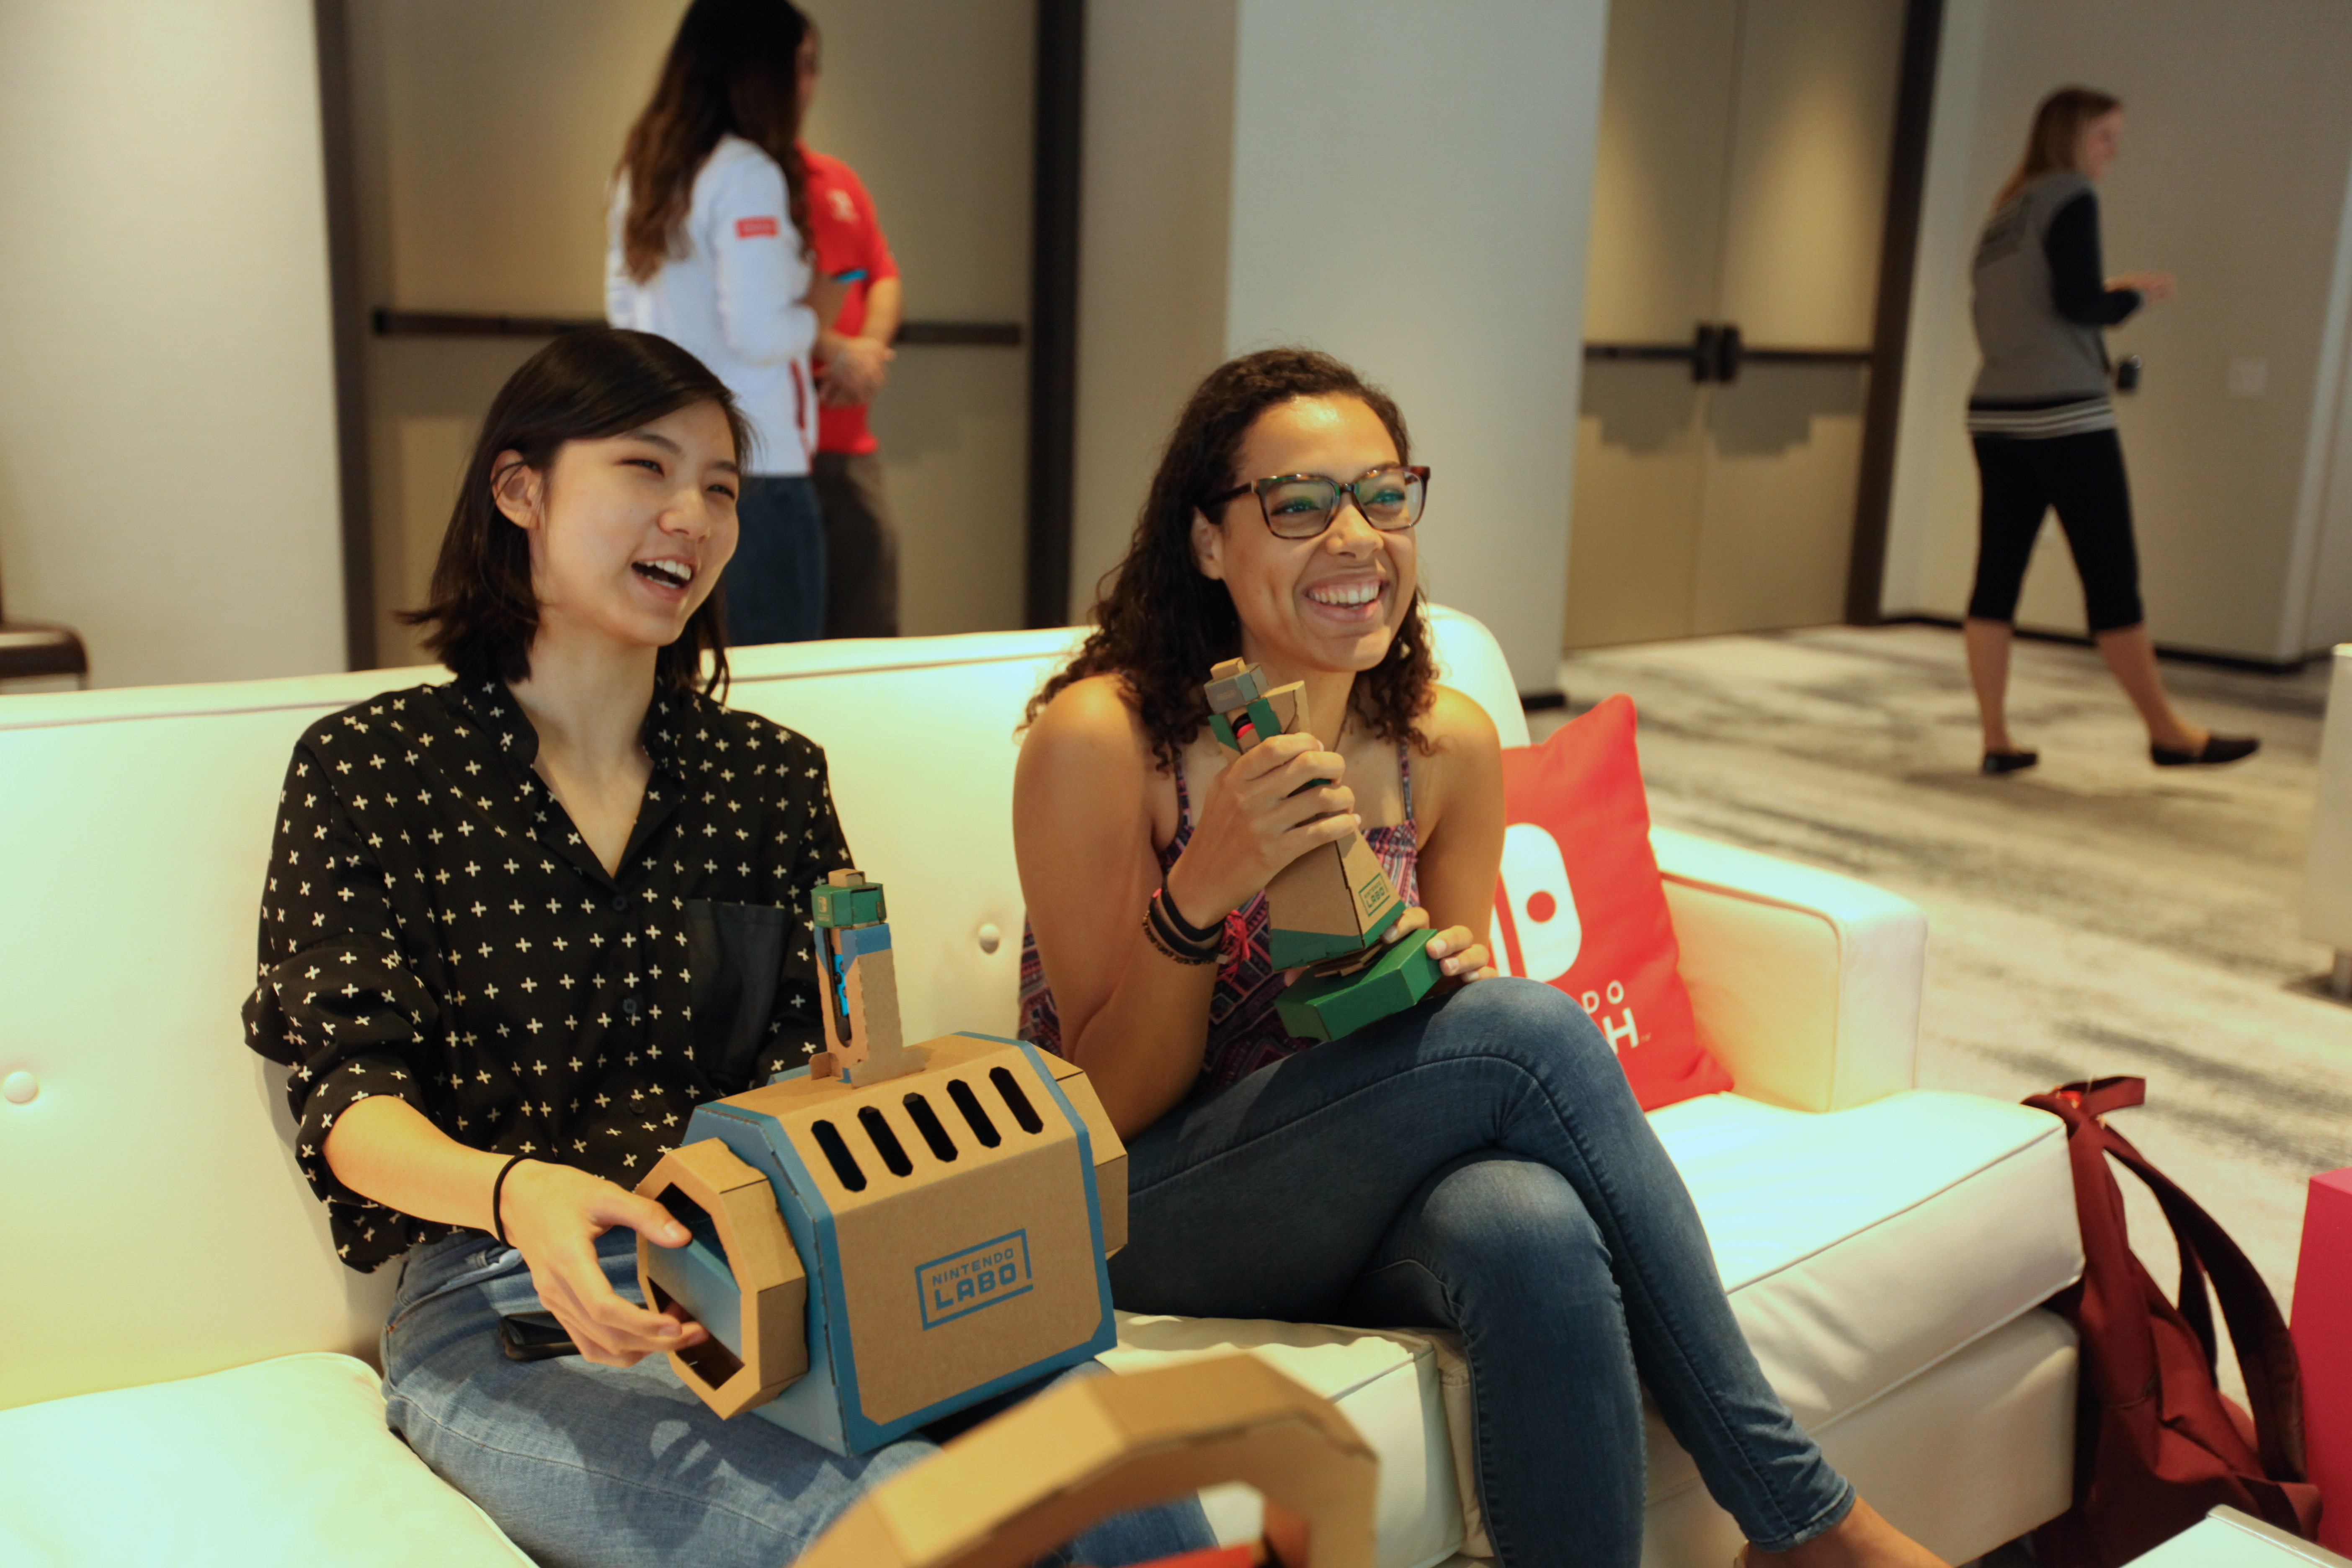 Allegra and Dami Lee of The Verge play with the Nintendo Labo Vehicle Kit